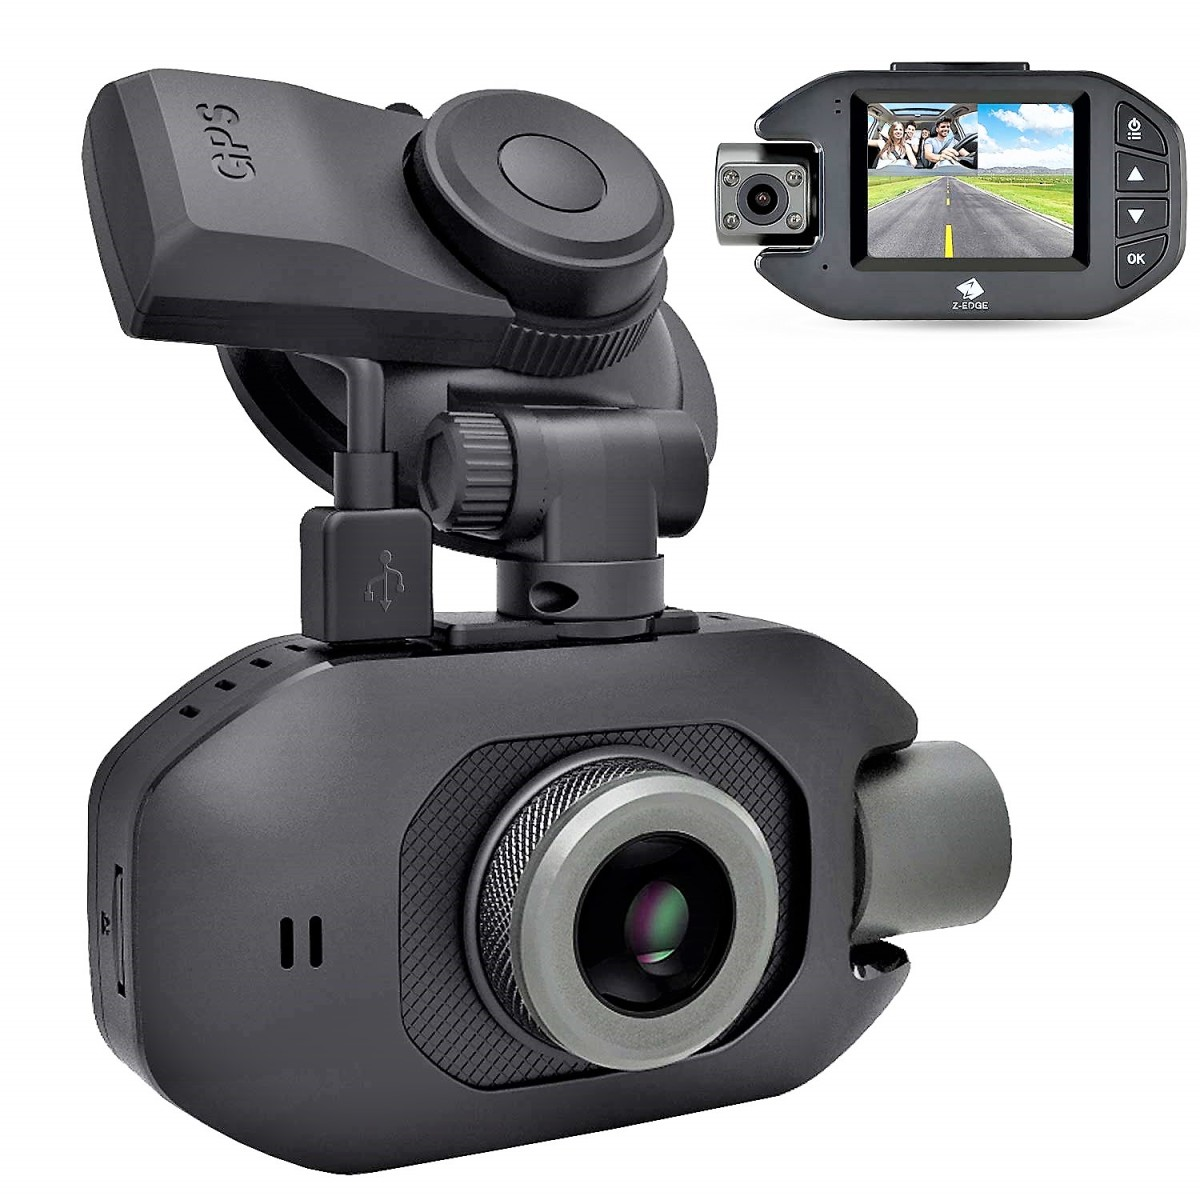 Z3Pro Dash Cam Review: Best Dual-Lens Security Camera for Uber and Lyft Drivers